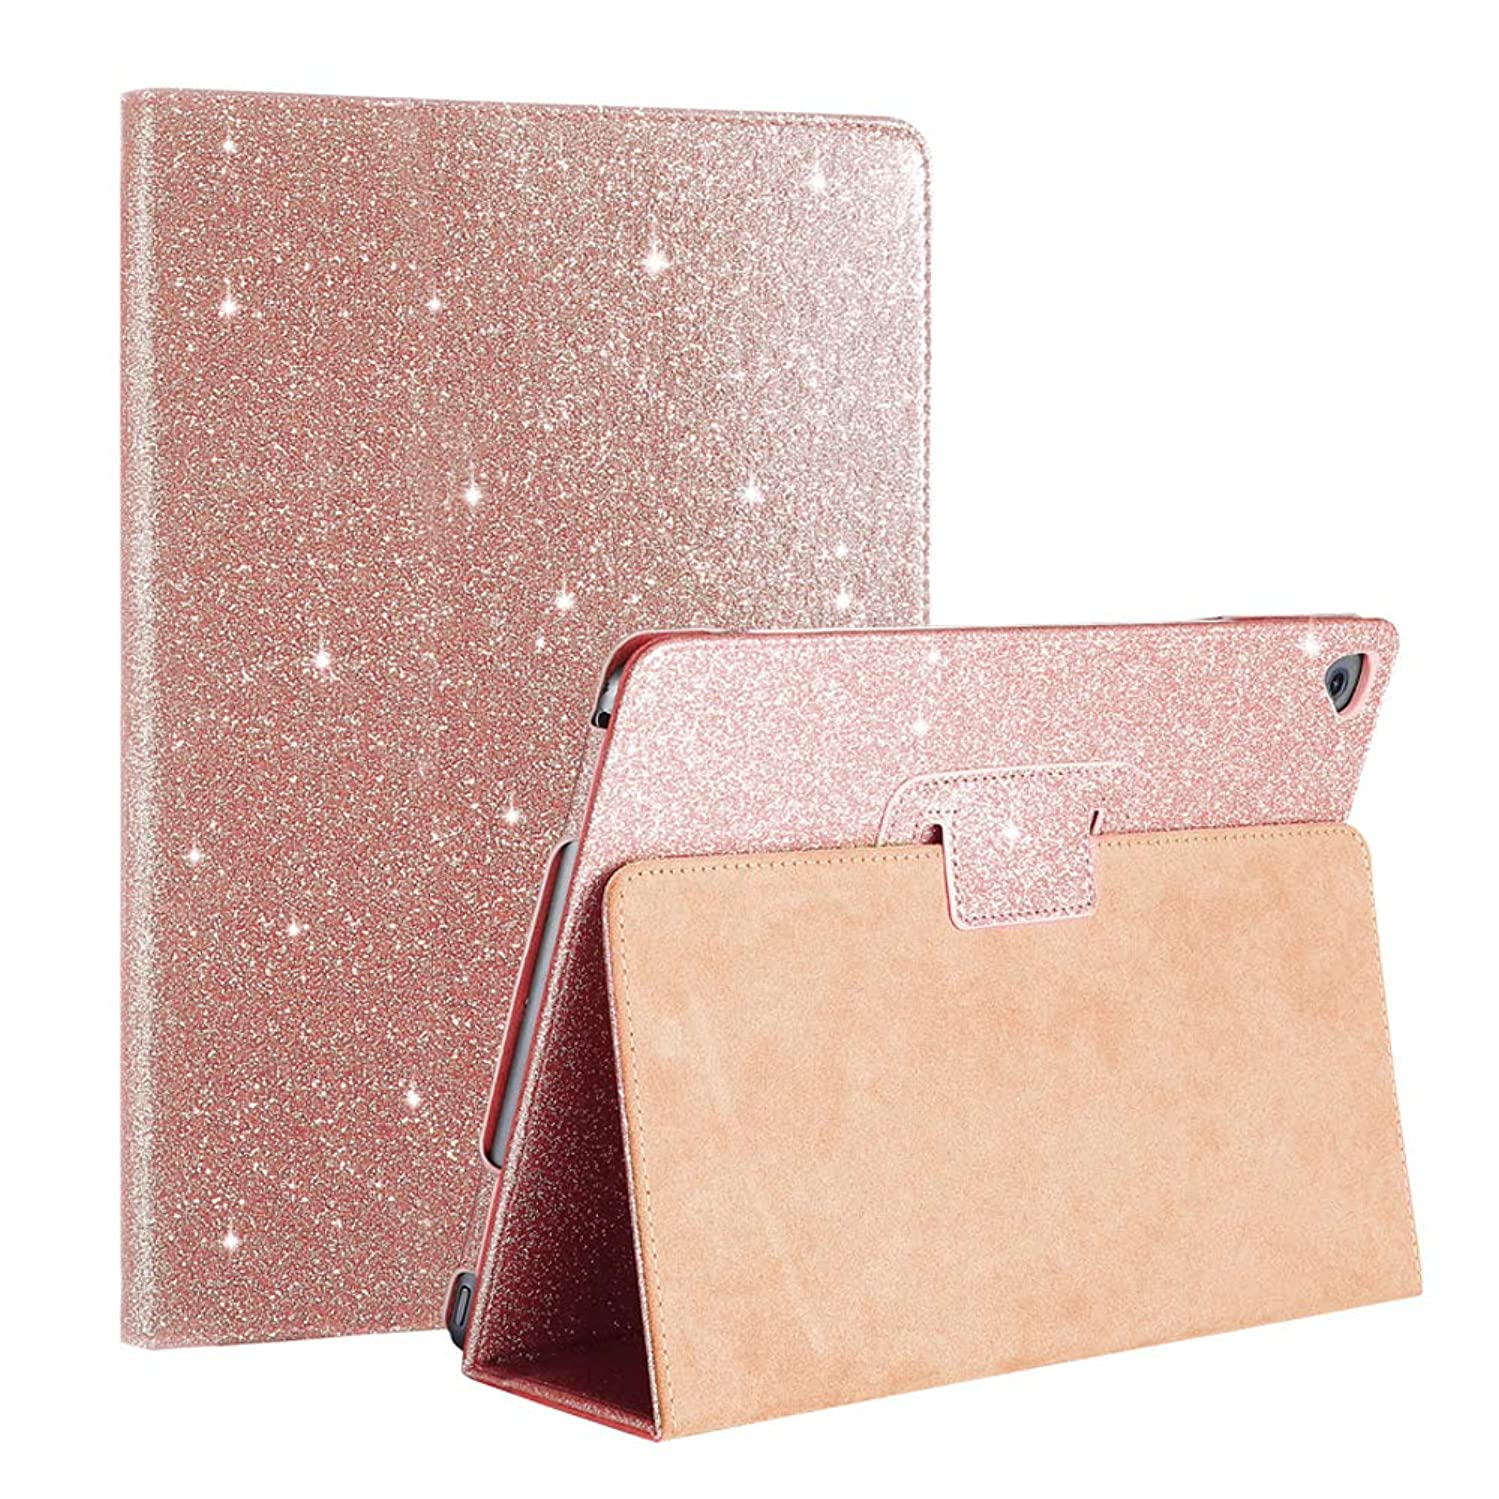 FANSONG iPad 2 3 4 Glittery Case, Sparkle Bling PU Leather Smart Cover [Flip Stand Function] [Auto Sleep/Wake] Case for iPad 2/3/4 (Rose Gold)